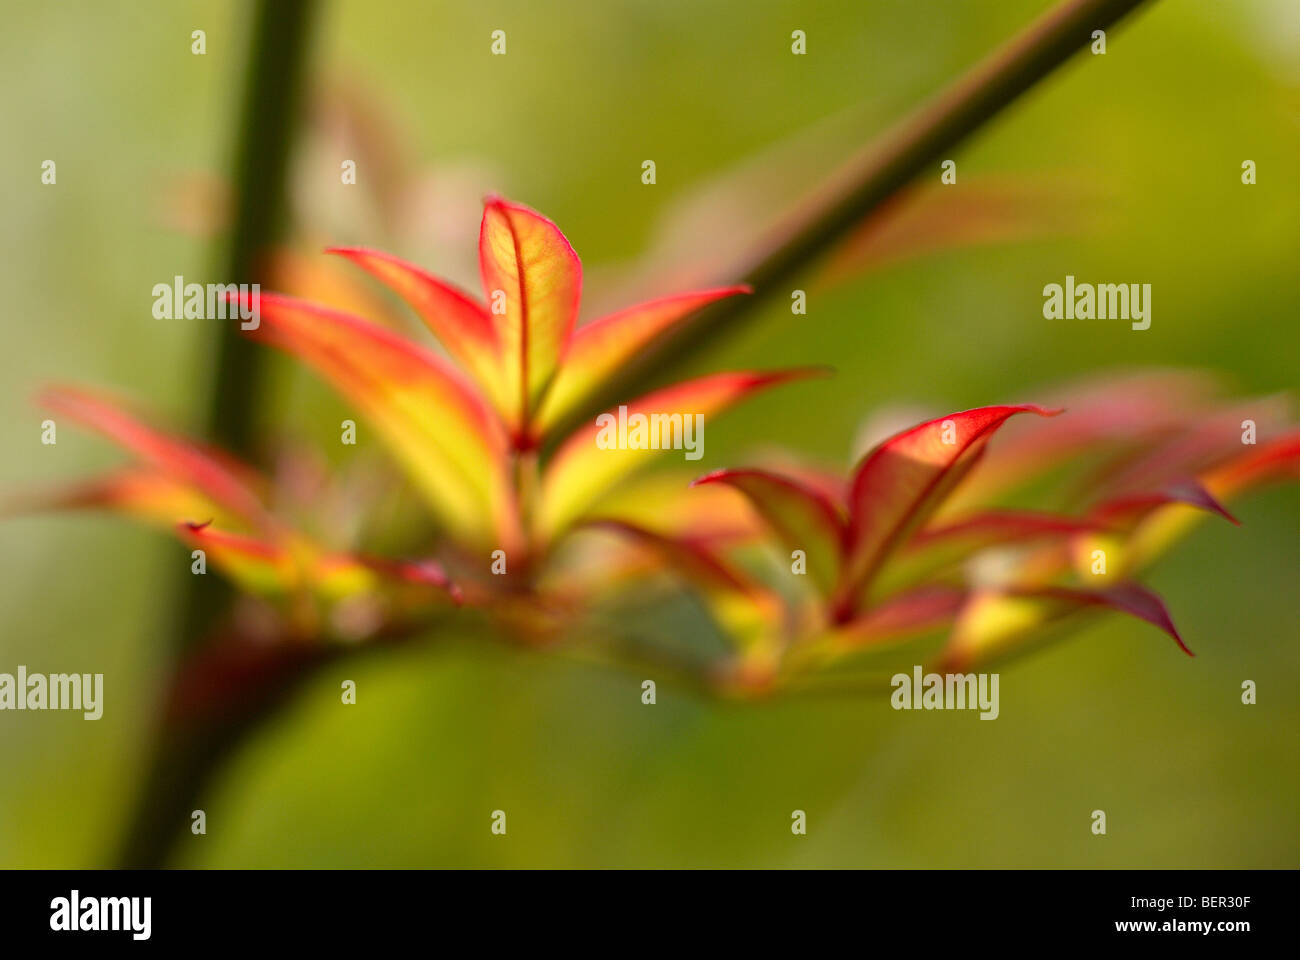 Autumn leaves, green background, leave, red, yellow, branch, macro, close-up, vein, leaf vein - Stock Image